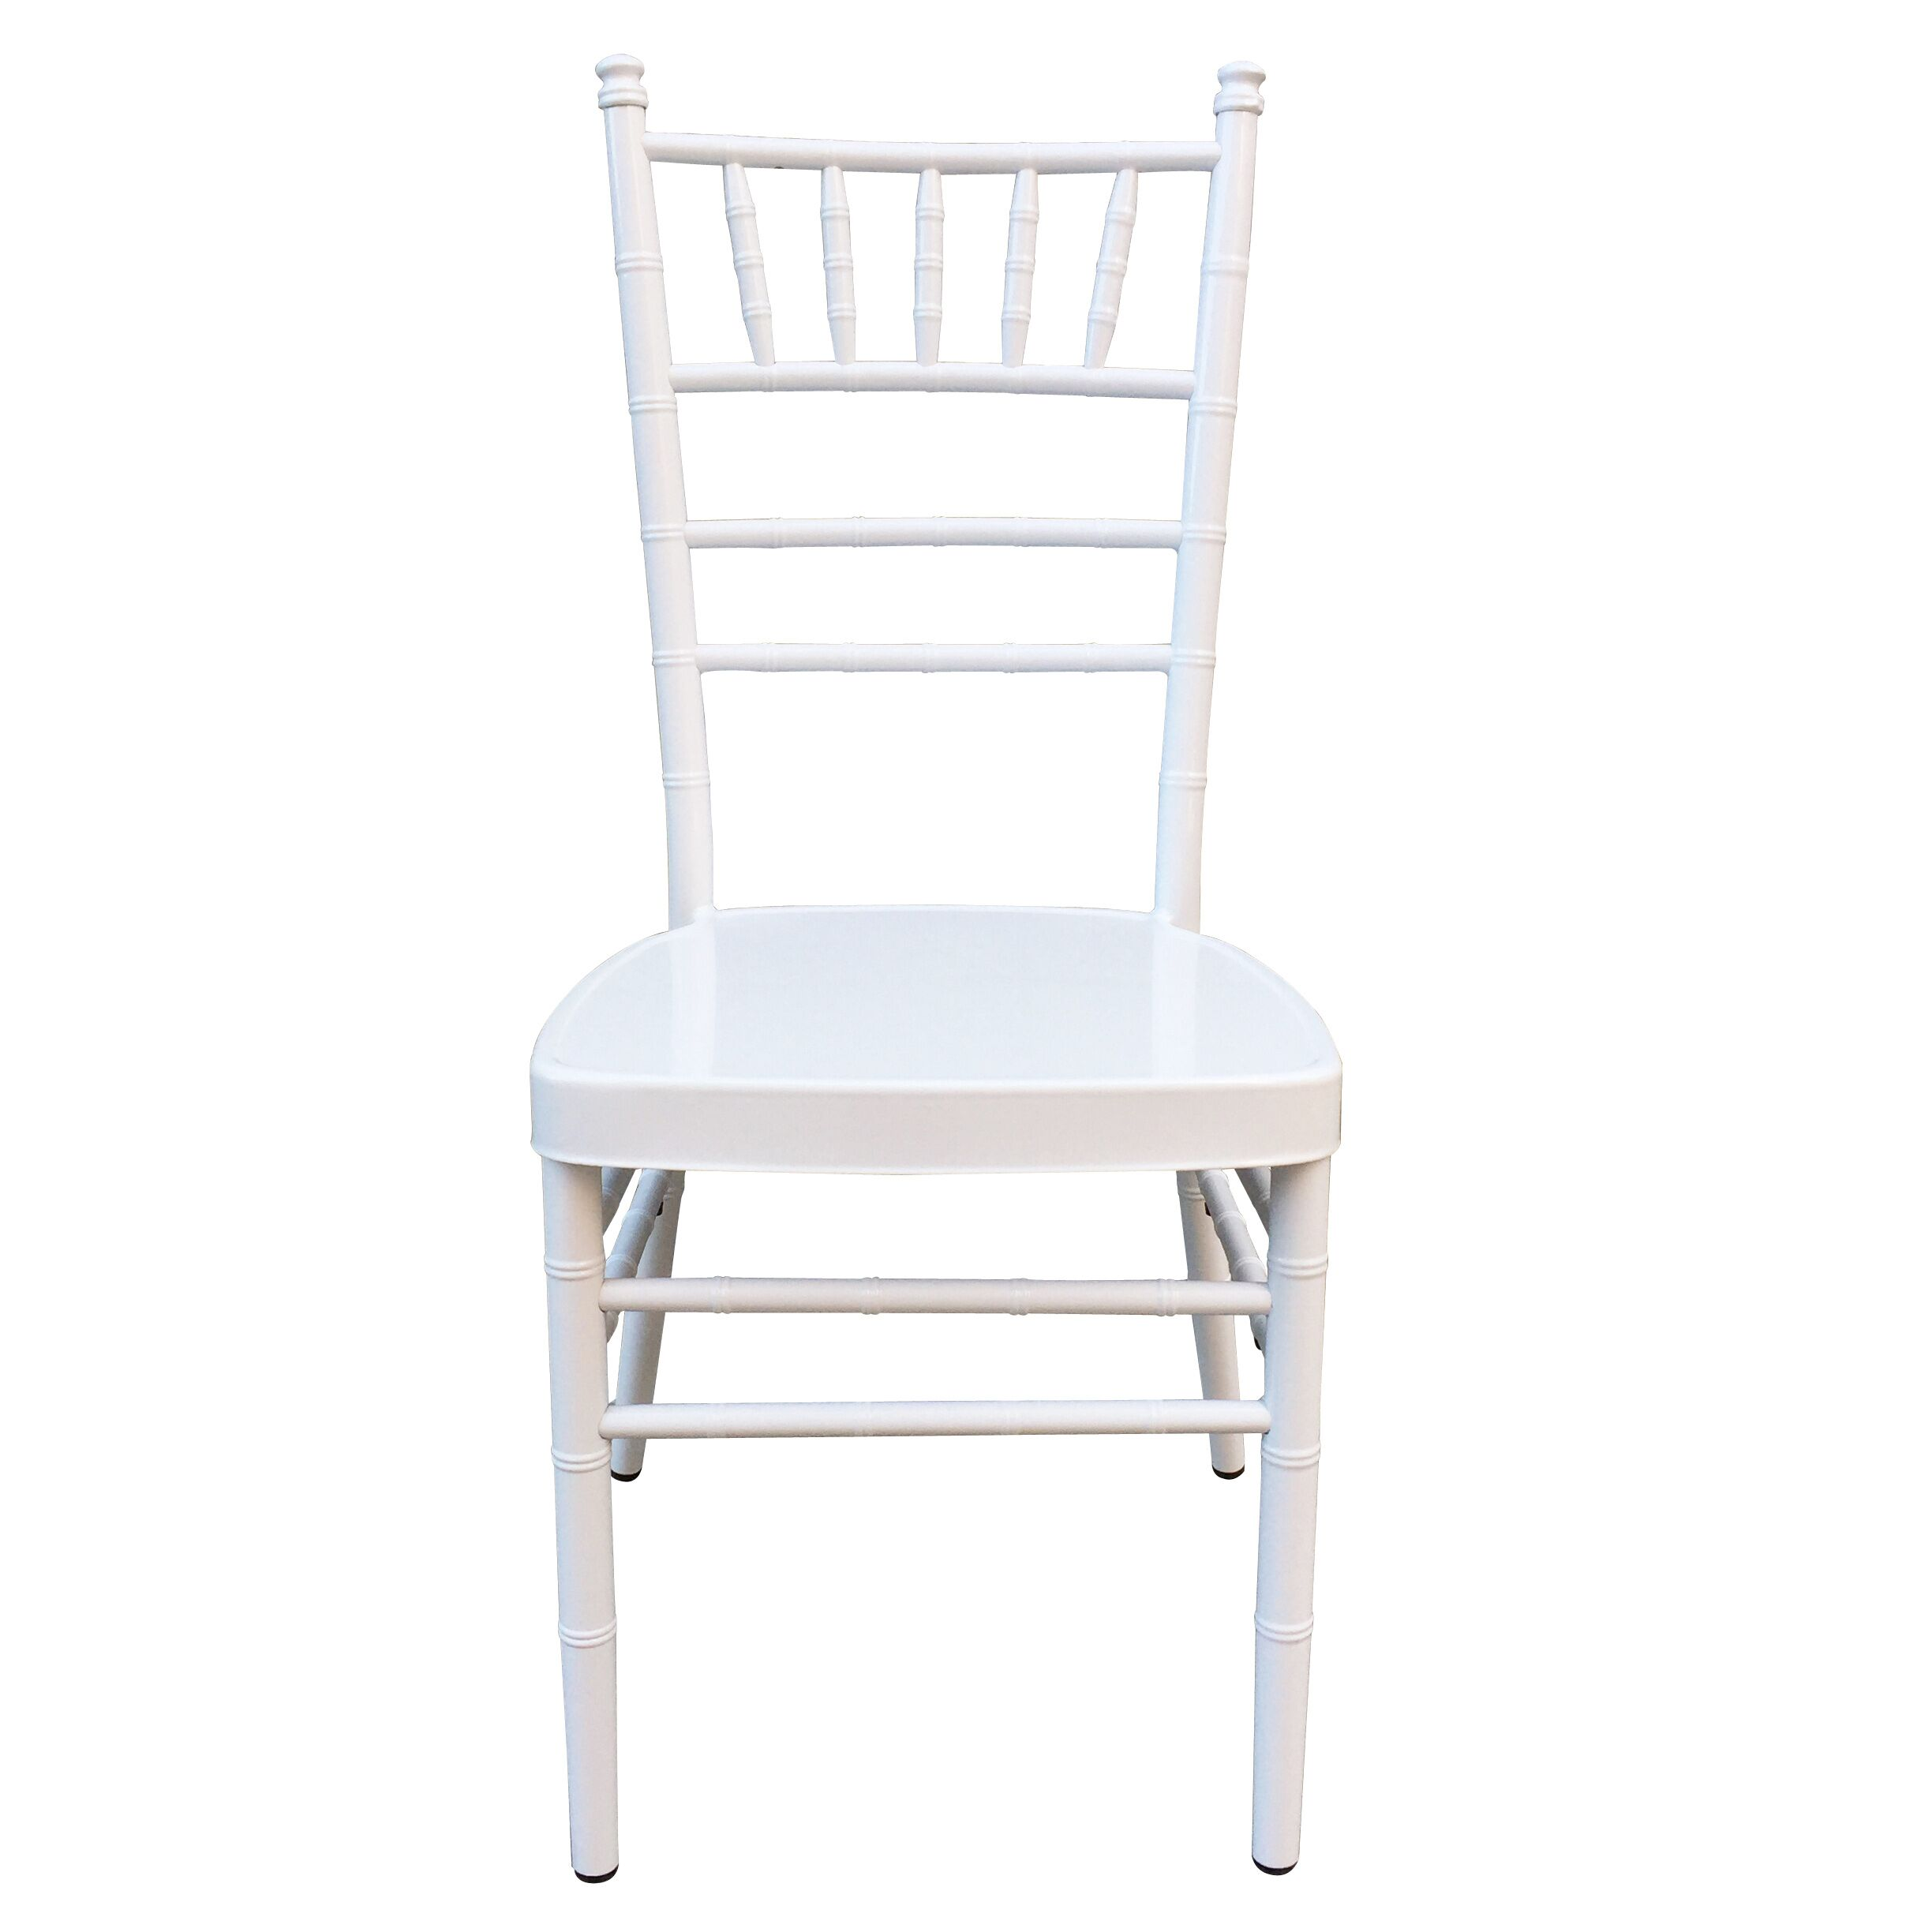 PriceList for Chairs Used Church Chairs Sale -